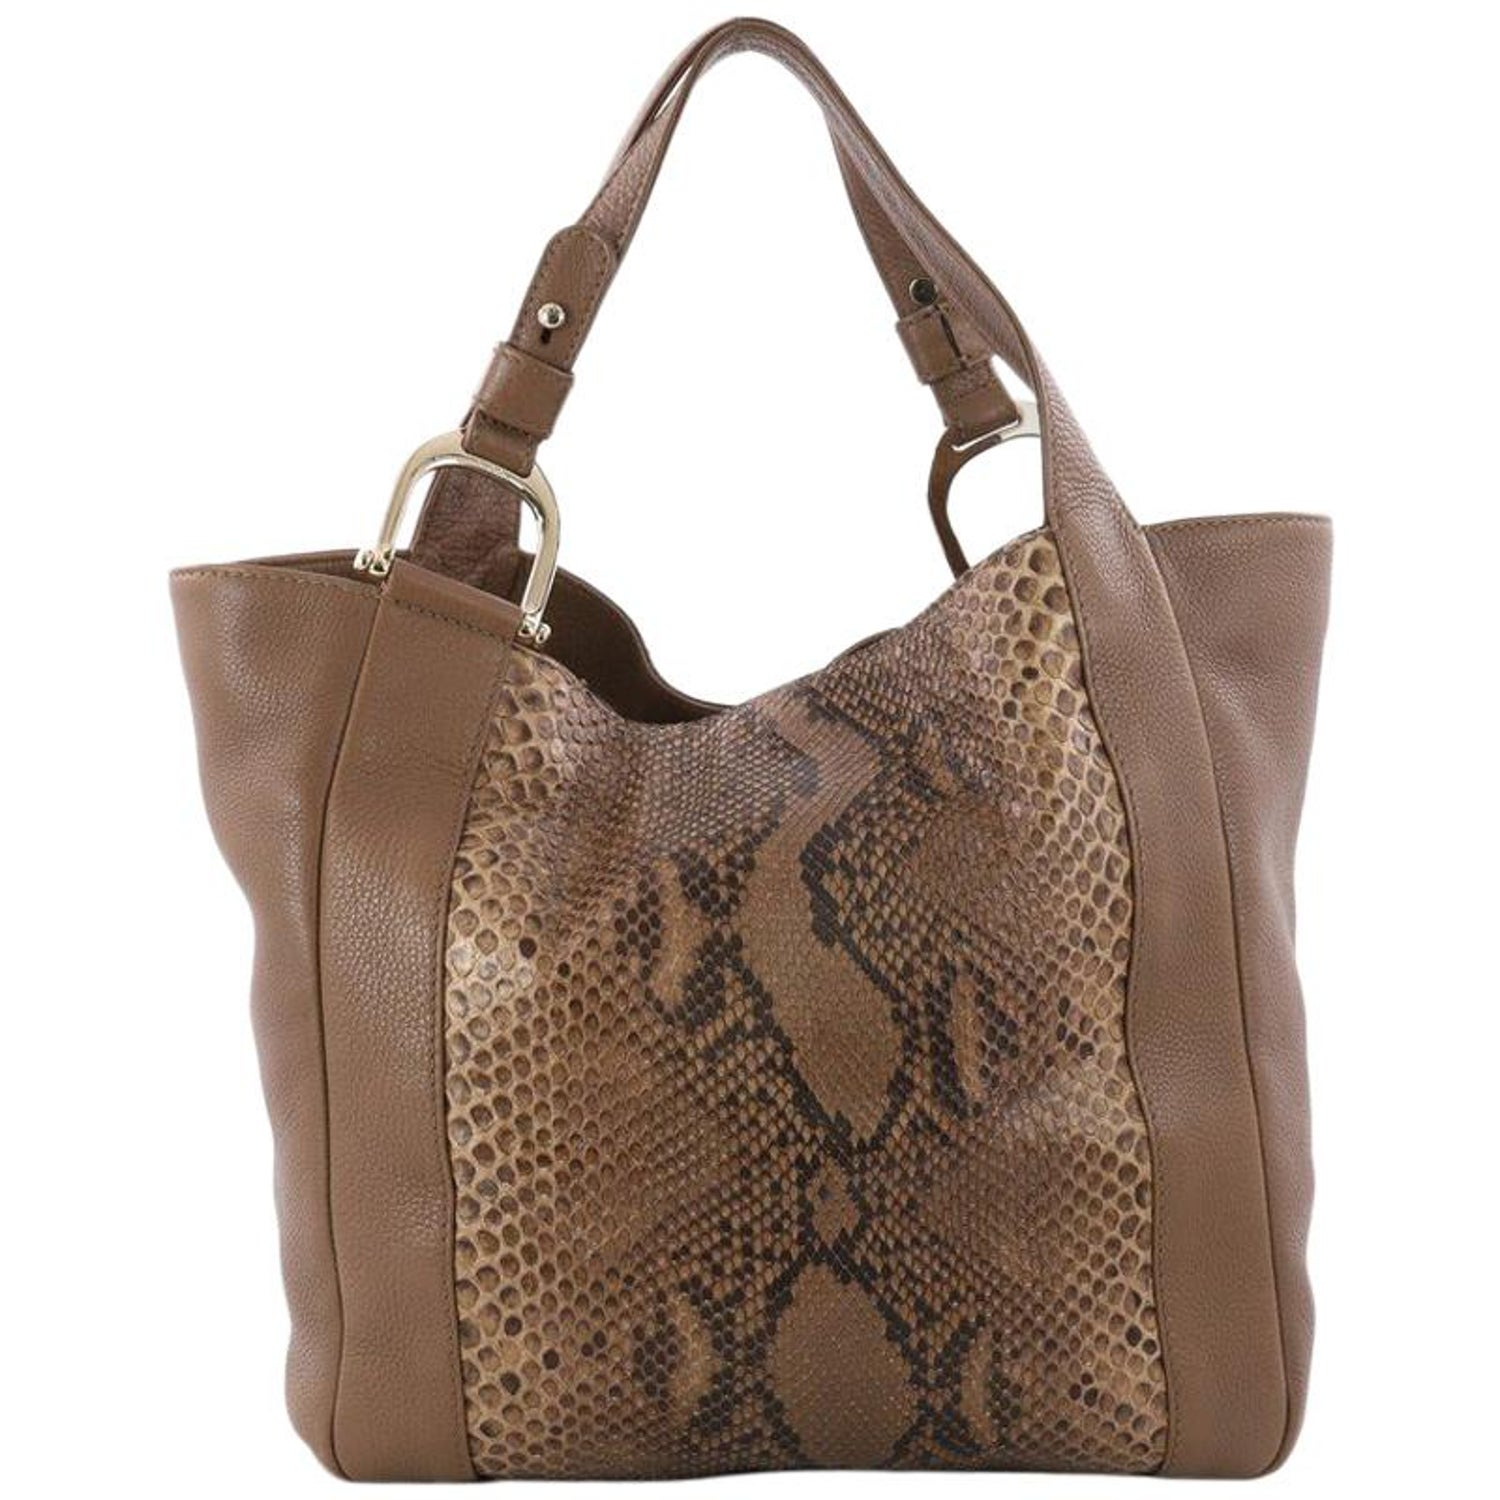 529d14a04aec Gucci Python And Leather Greenwich Tote at 1stdibs